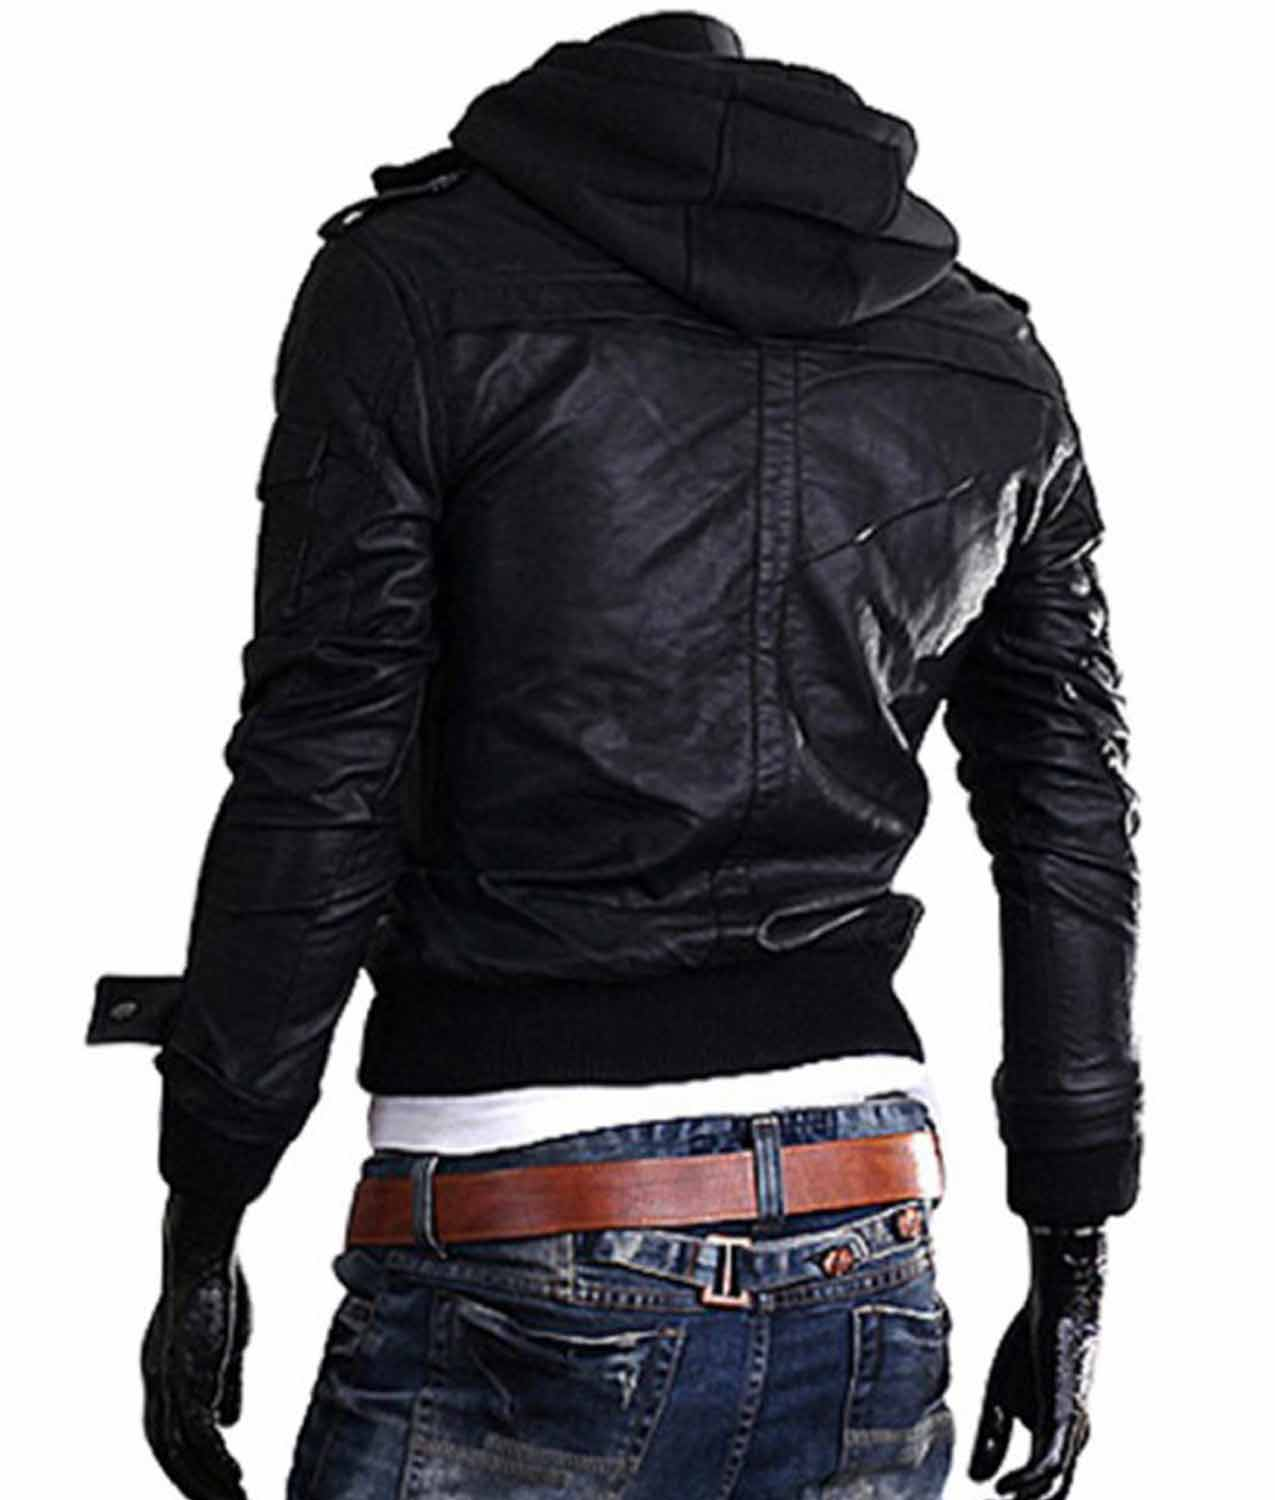 19a063352be Men's Bomber Style Slim Fit Black Leather Jacket With Hoodie ...